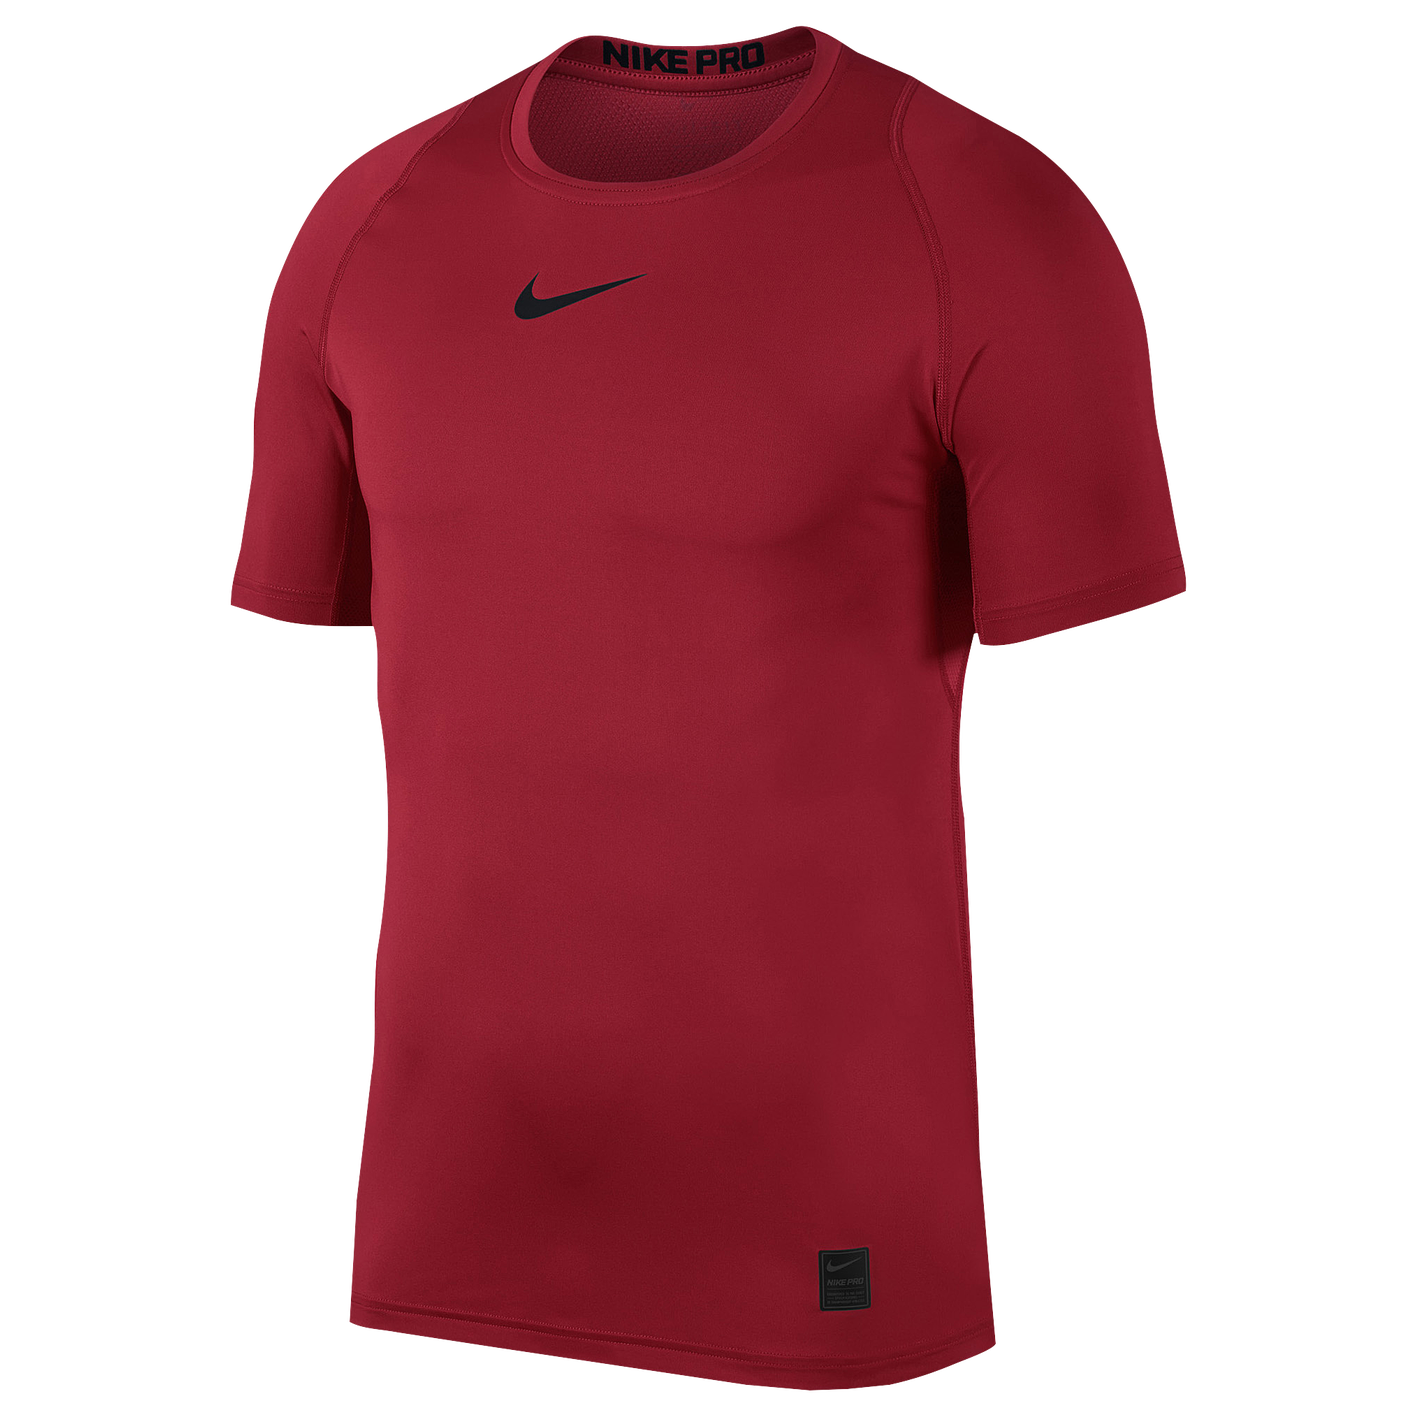 3be03cea Nike Pro Fitted Short Sleeve Top - Men's - Training - Clothing ...